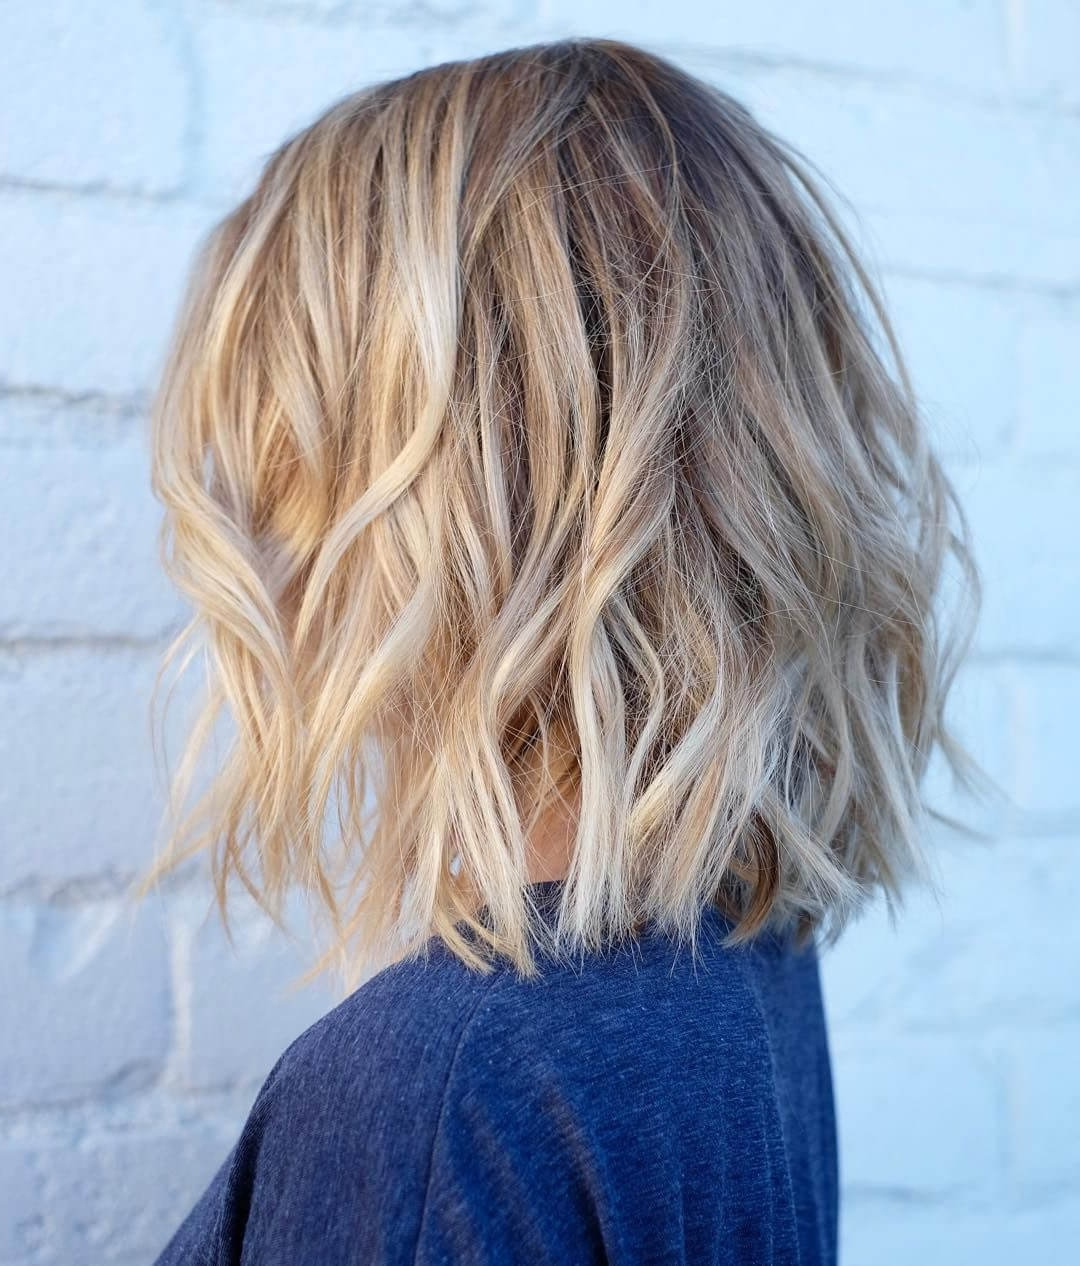 50 Fresh Short Blonde Hair Ideas To Update Your Style In 2018 For Current Super Straight Ash Blonde Bob Hairstyles (View 18 of 20)